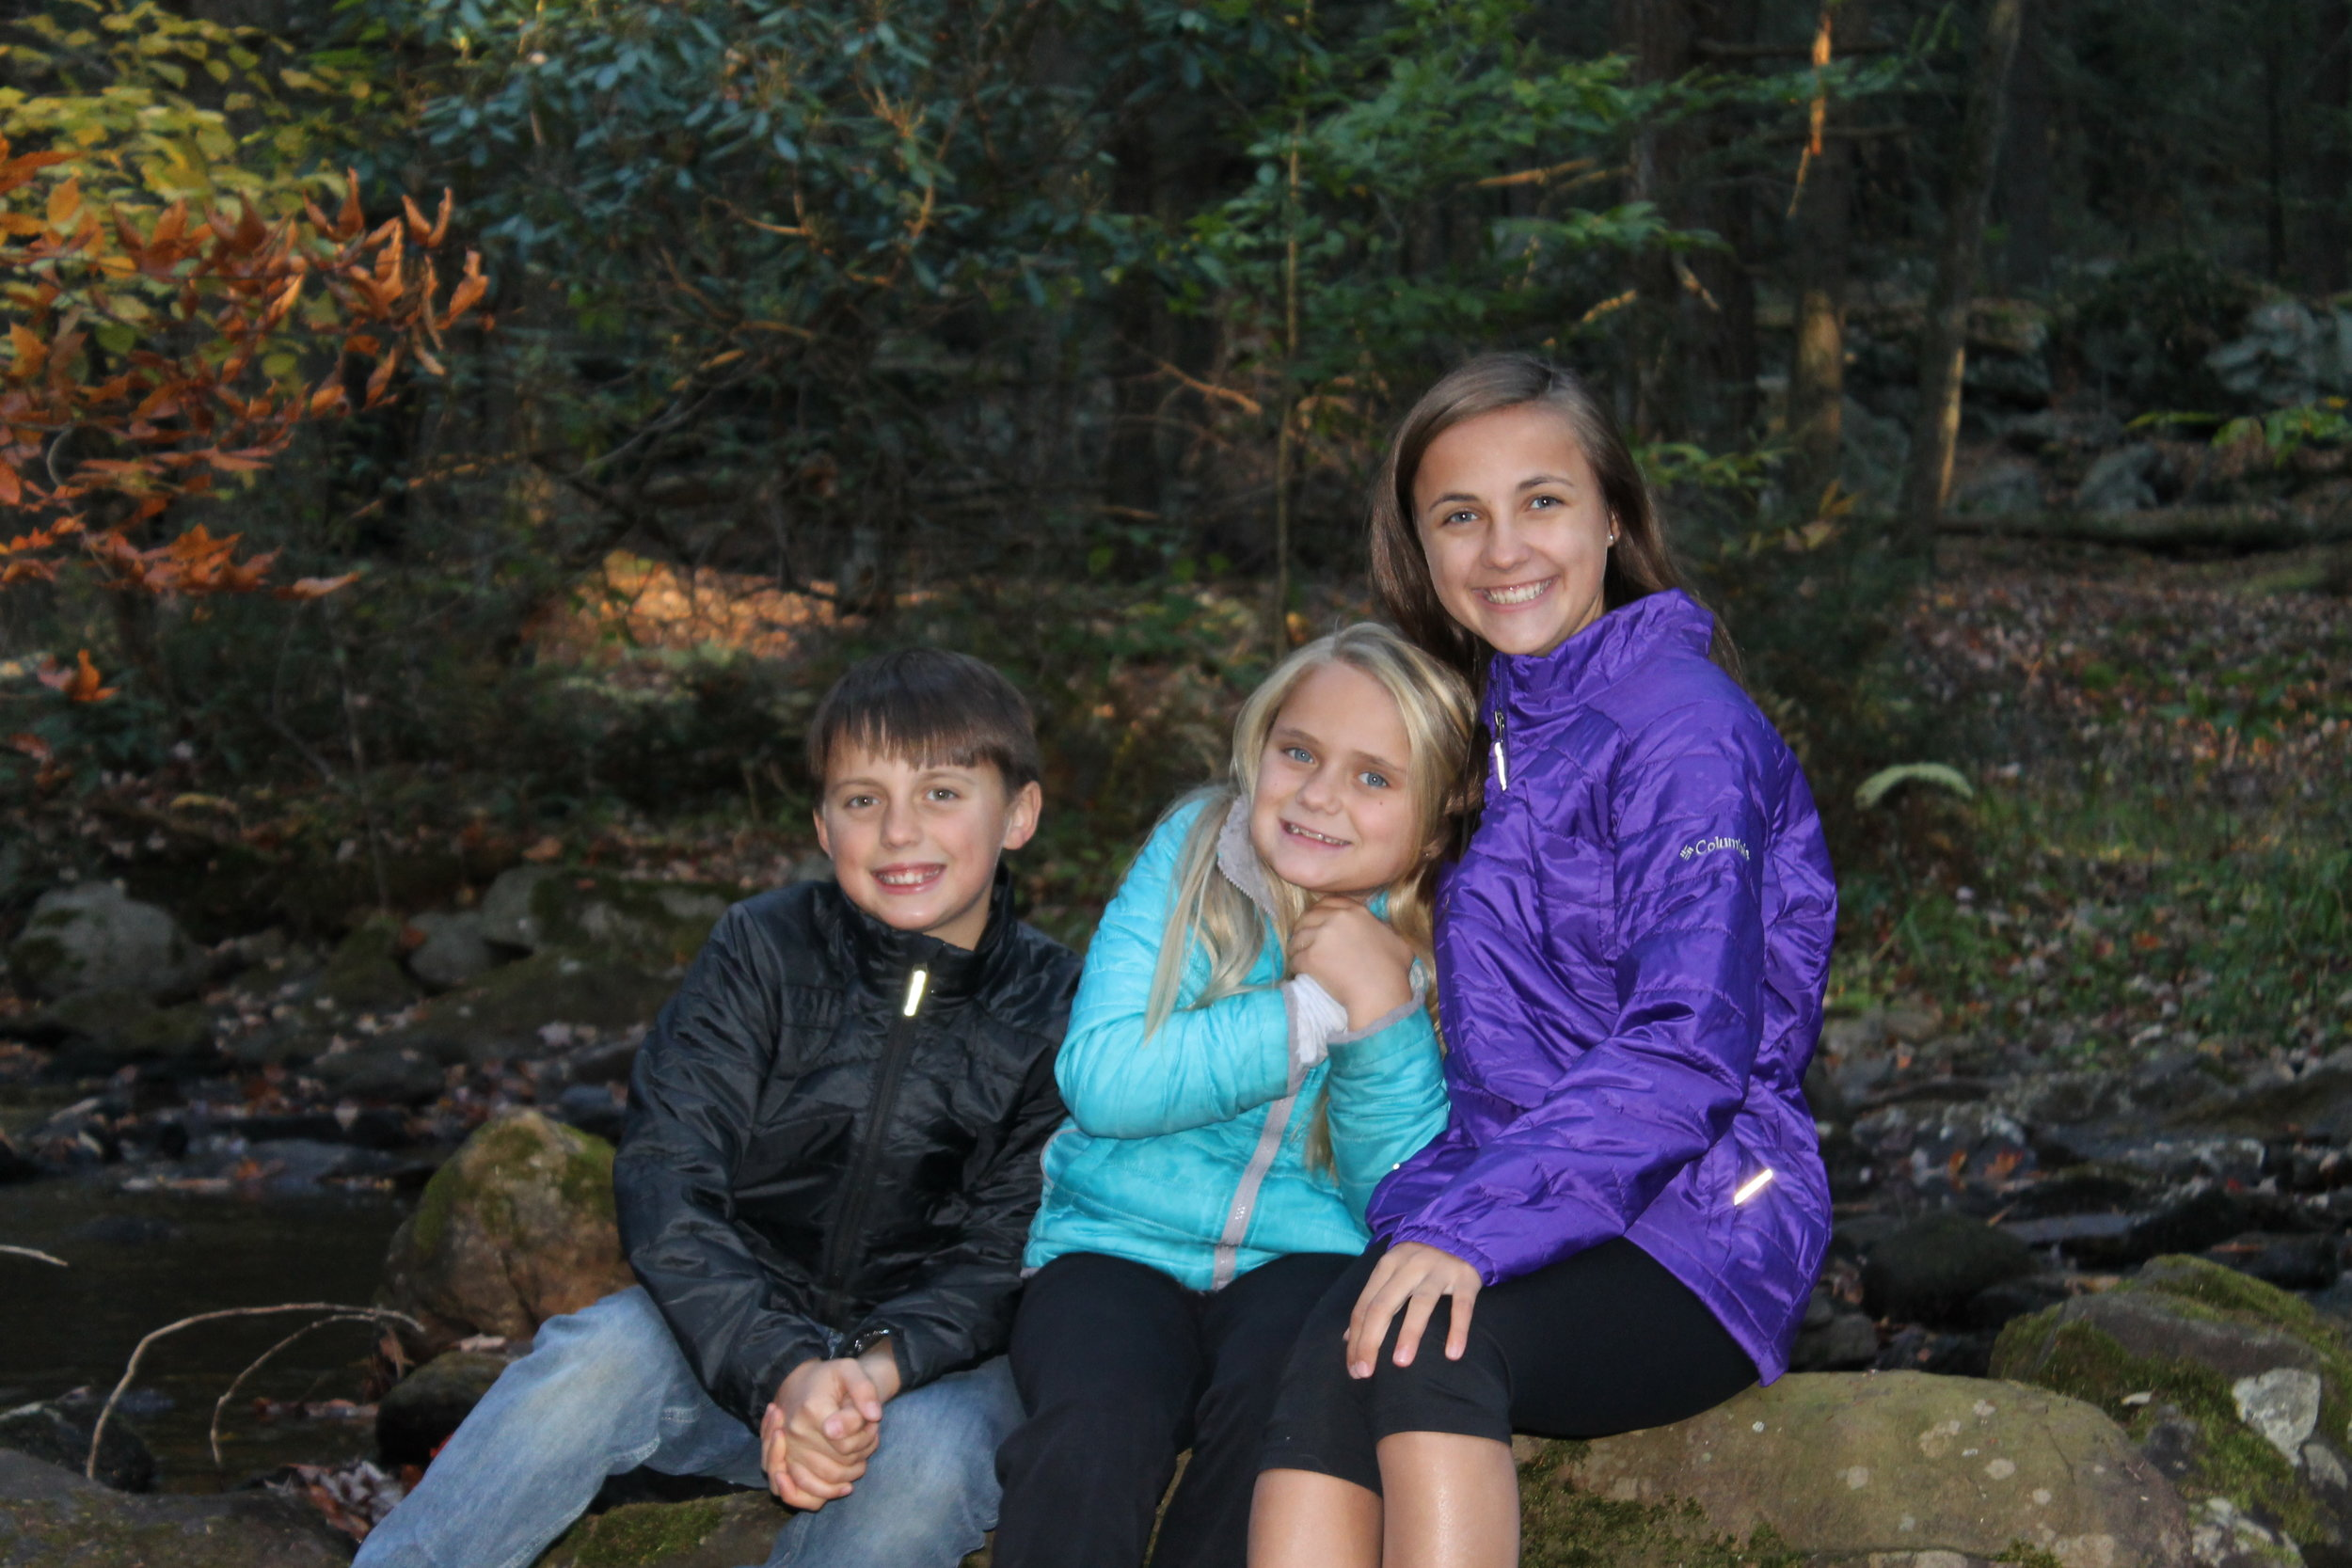 Mountain hiking adventure with the family